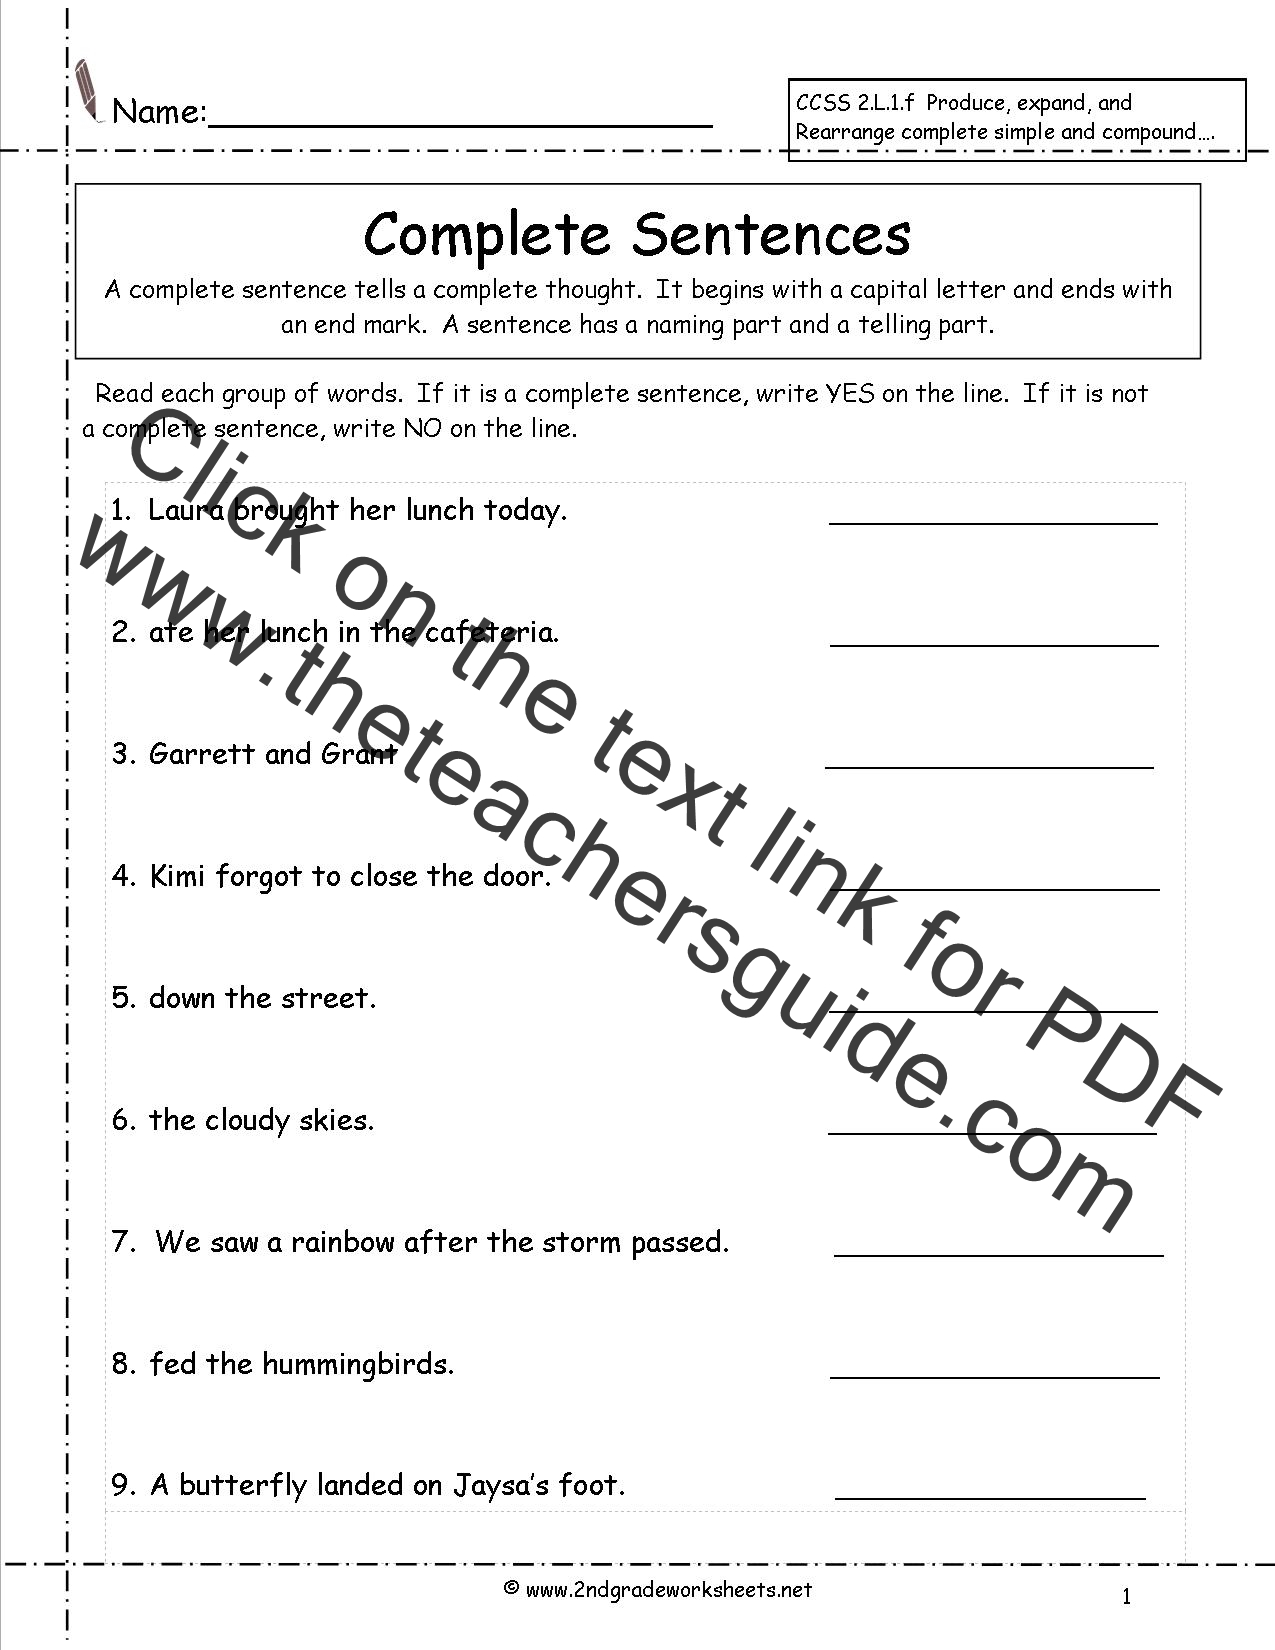 Printables Grammar Worksheets Second Grade second grade sentences worksheets ccss 2 l 1 f complete worksheets